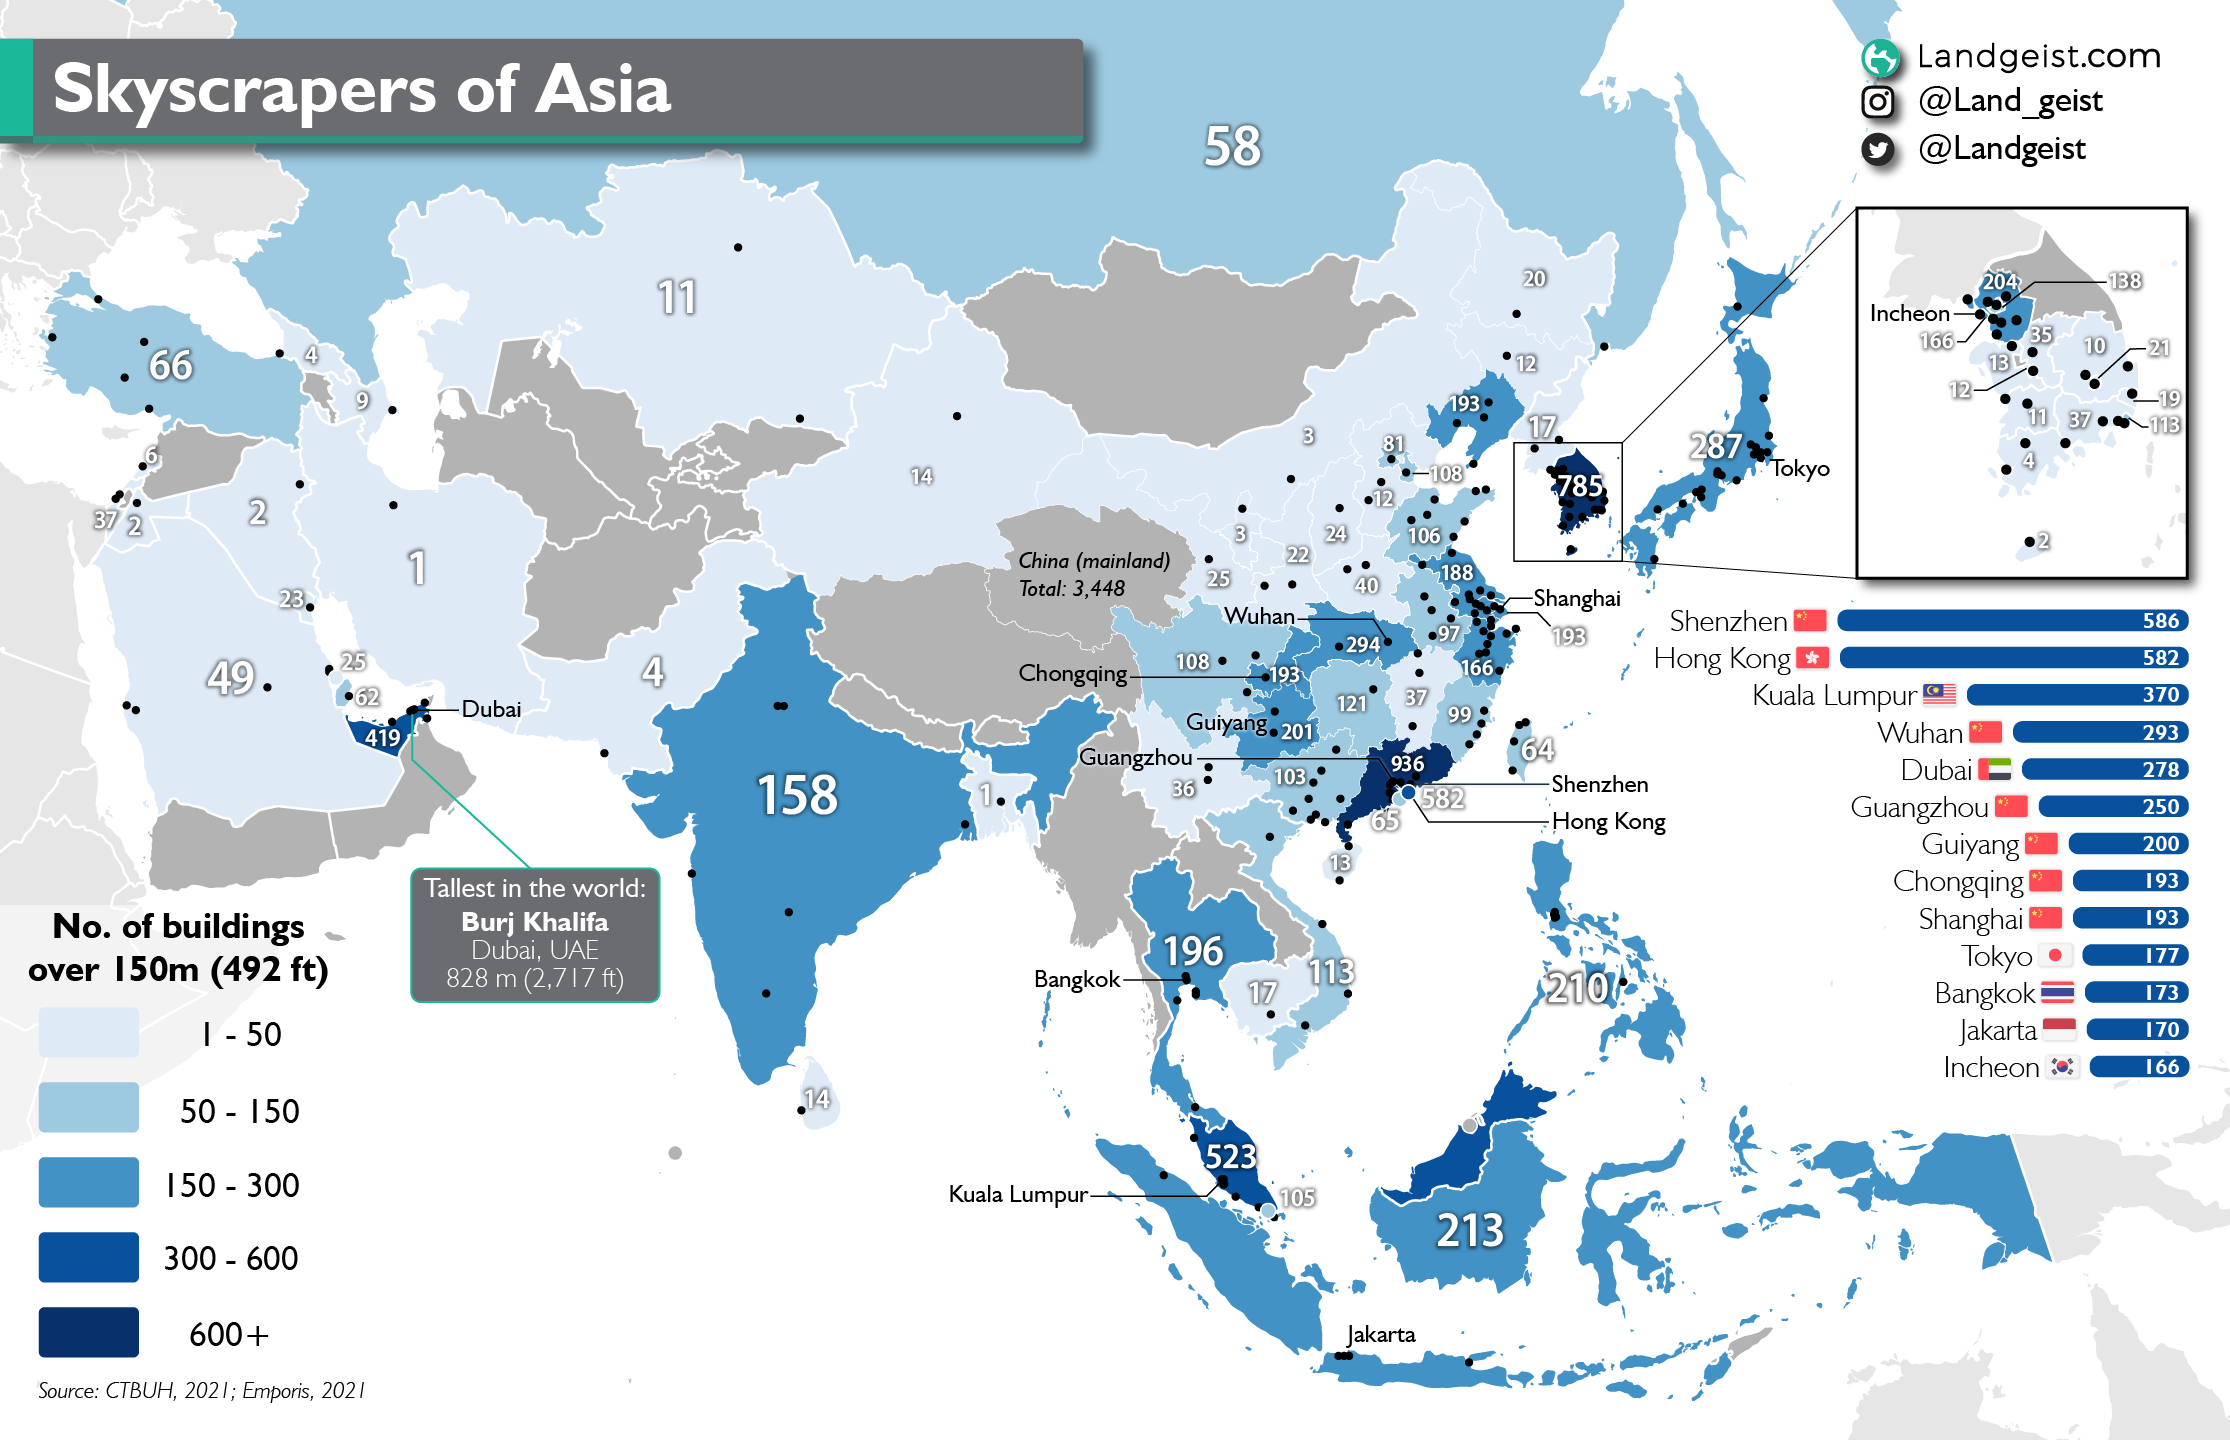 Map of the skyscraper of Asia